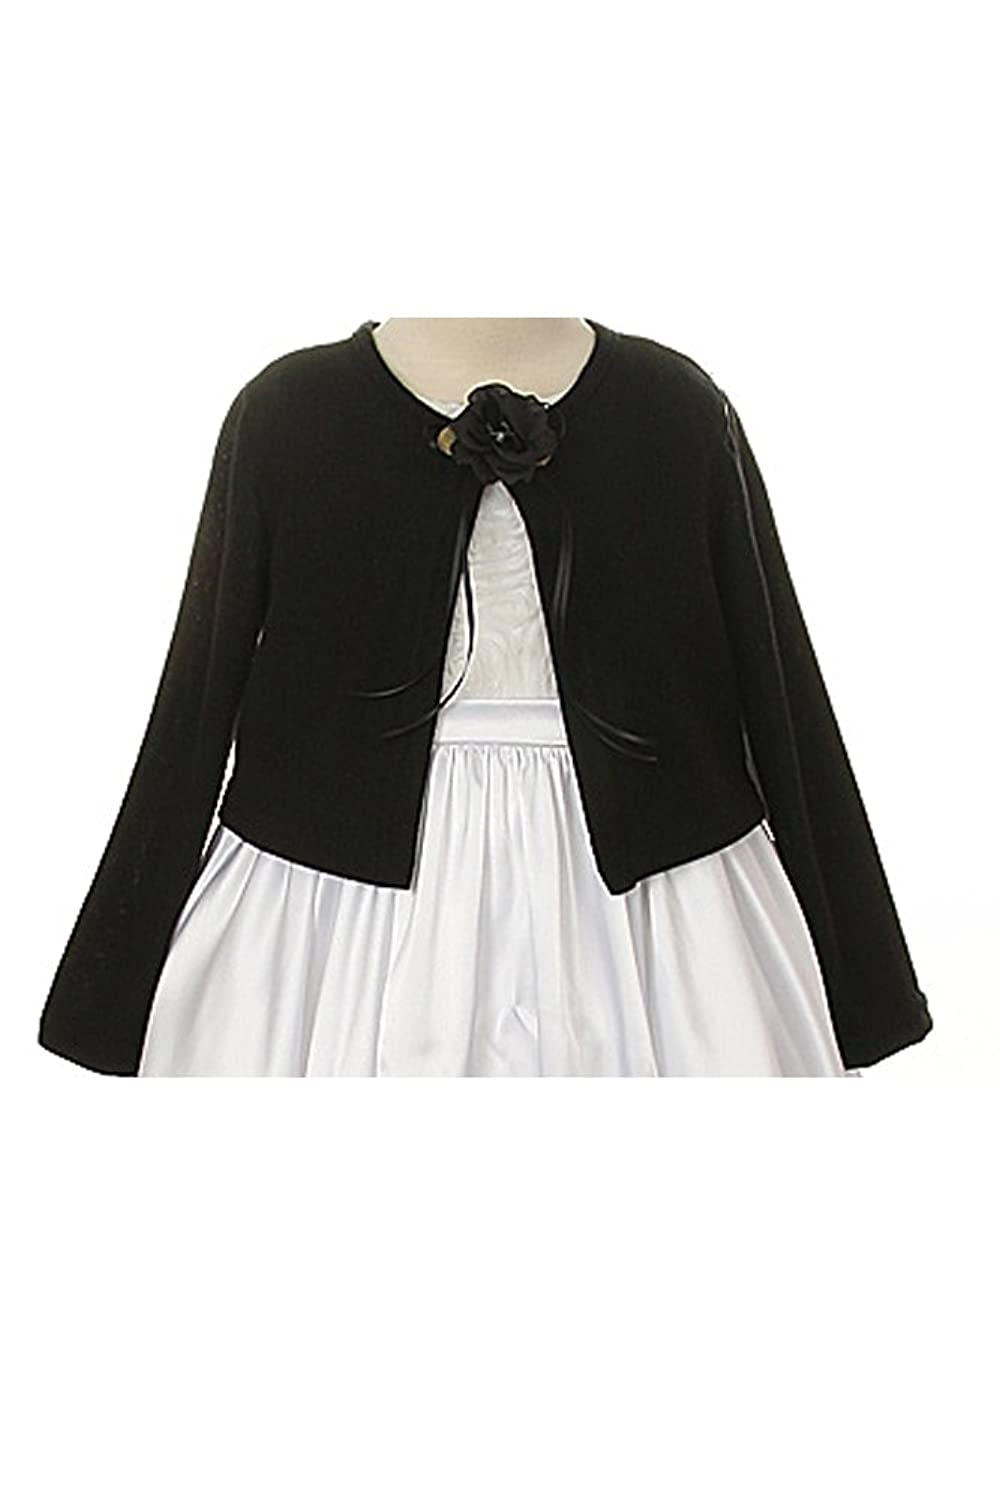 Amazon.com: Basic Knit Girl's Cardigan Jacket Sweater Black ...